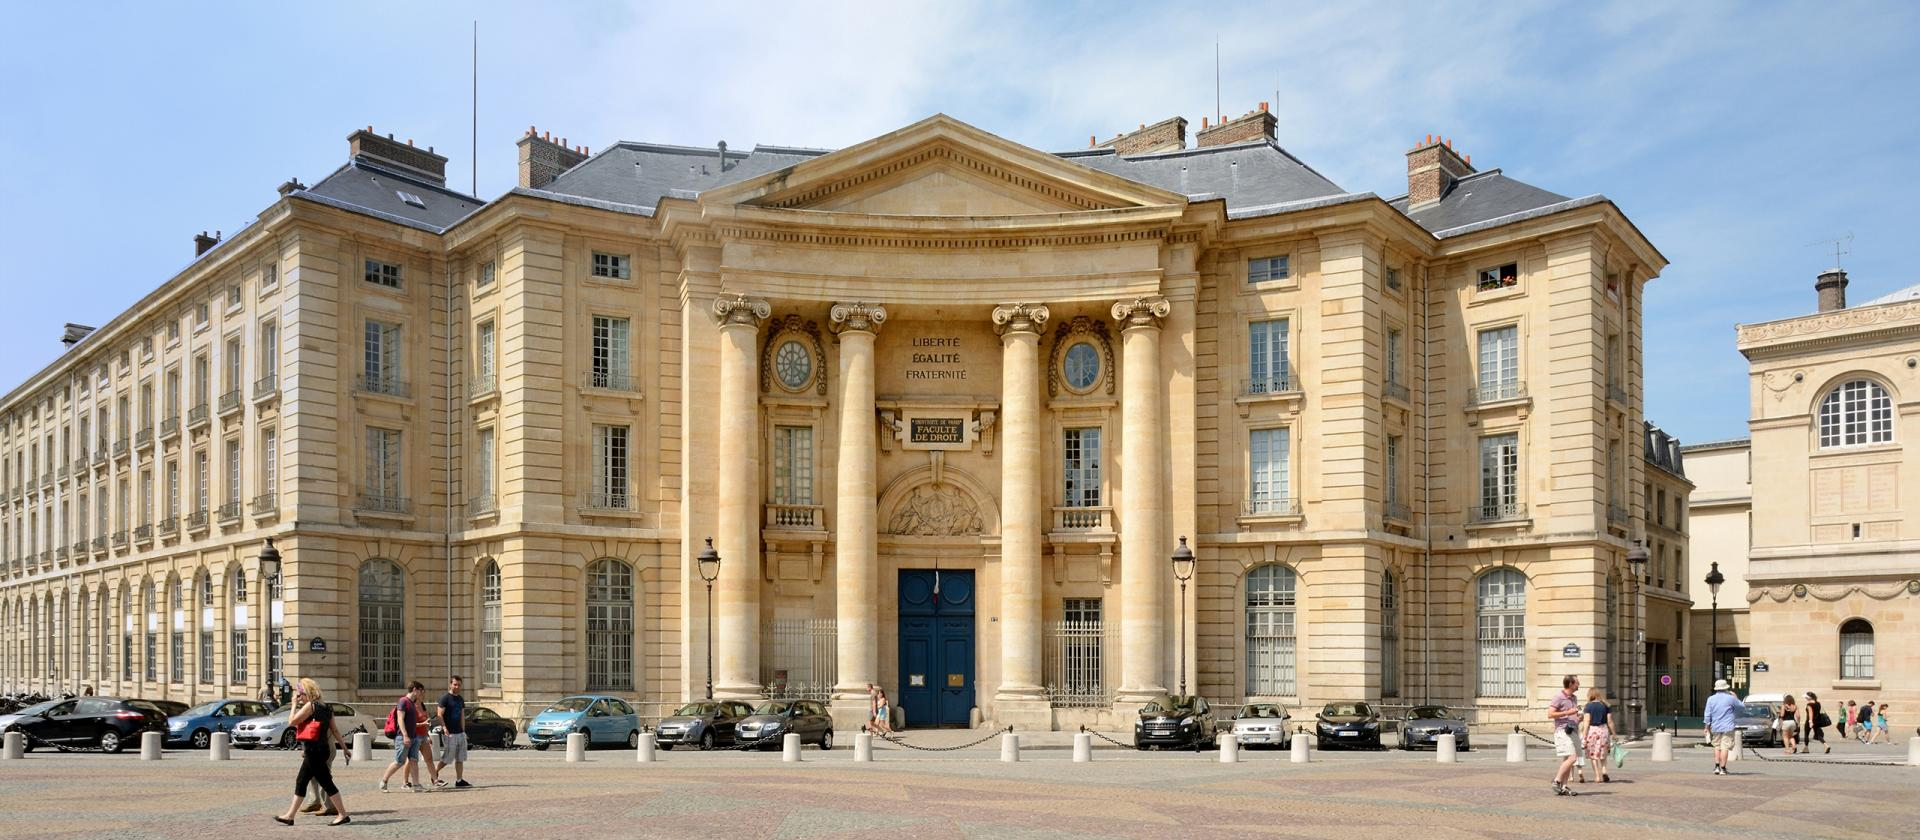 Panthéon-Sorbonne University in France